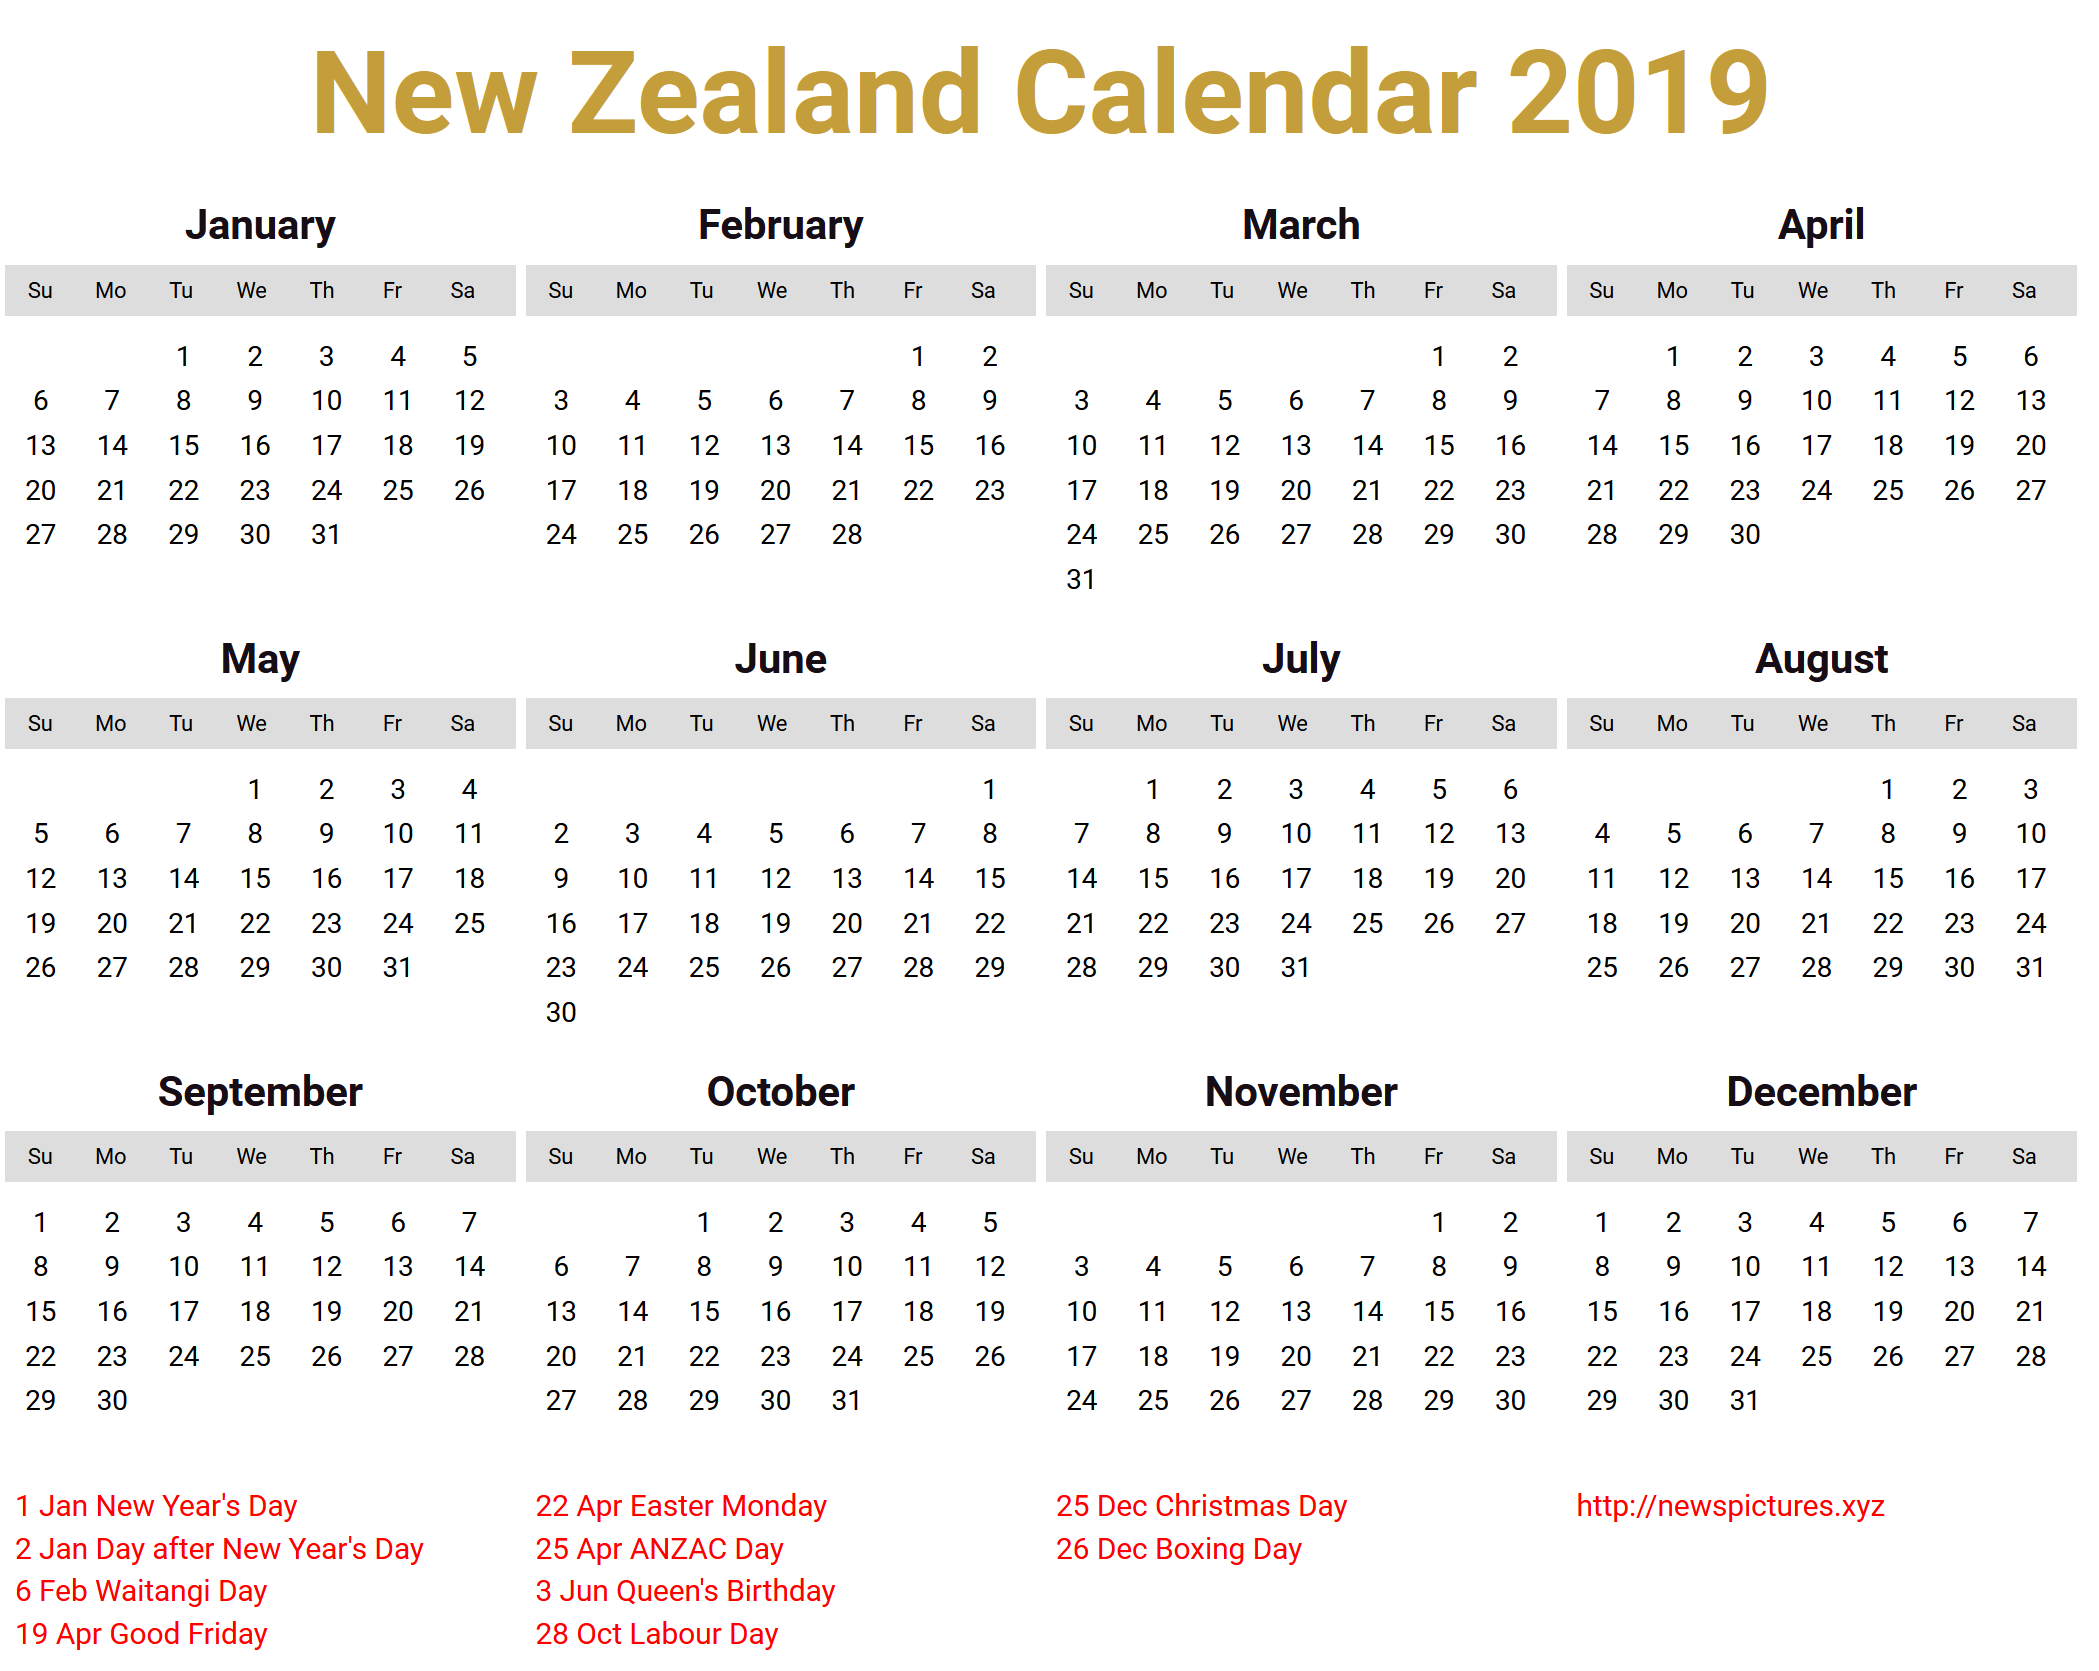 Image for New Zealand Calendar 2019 download | Bear | Holiday